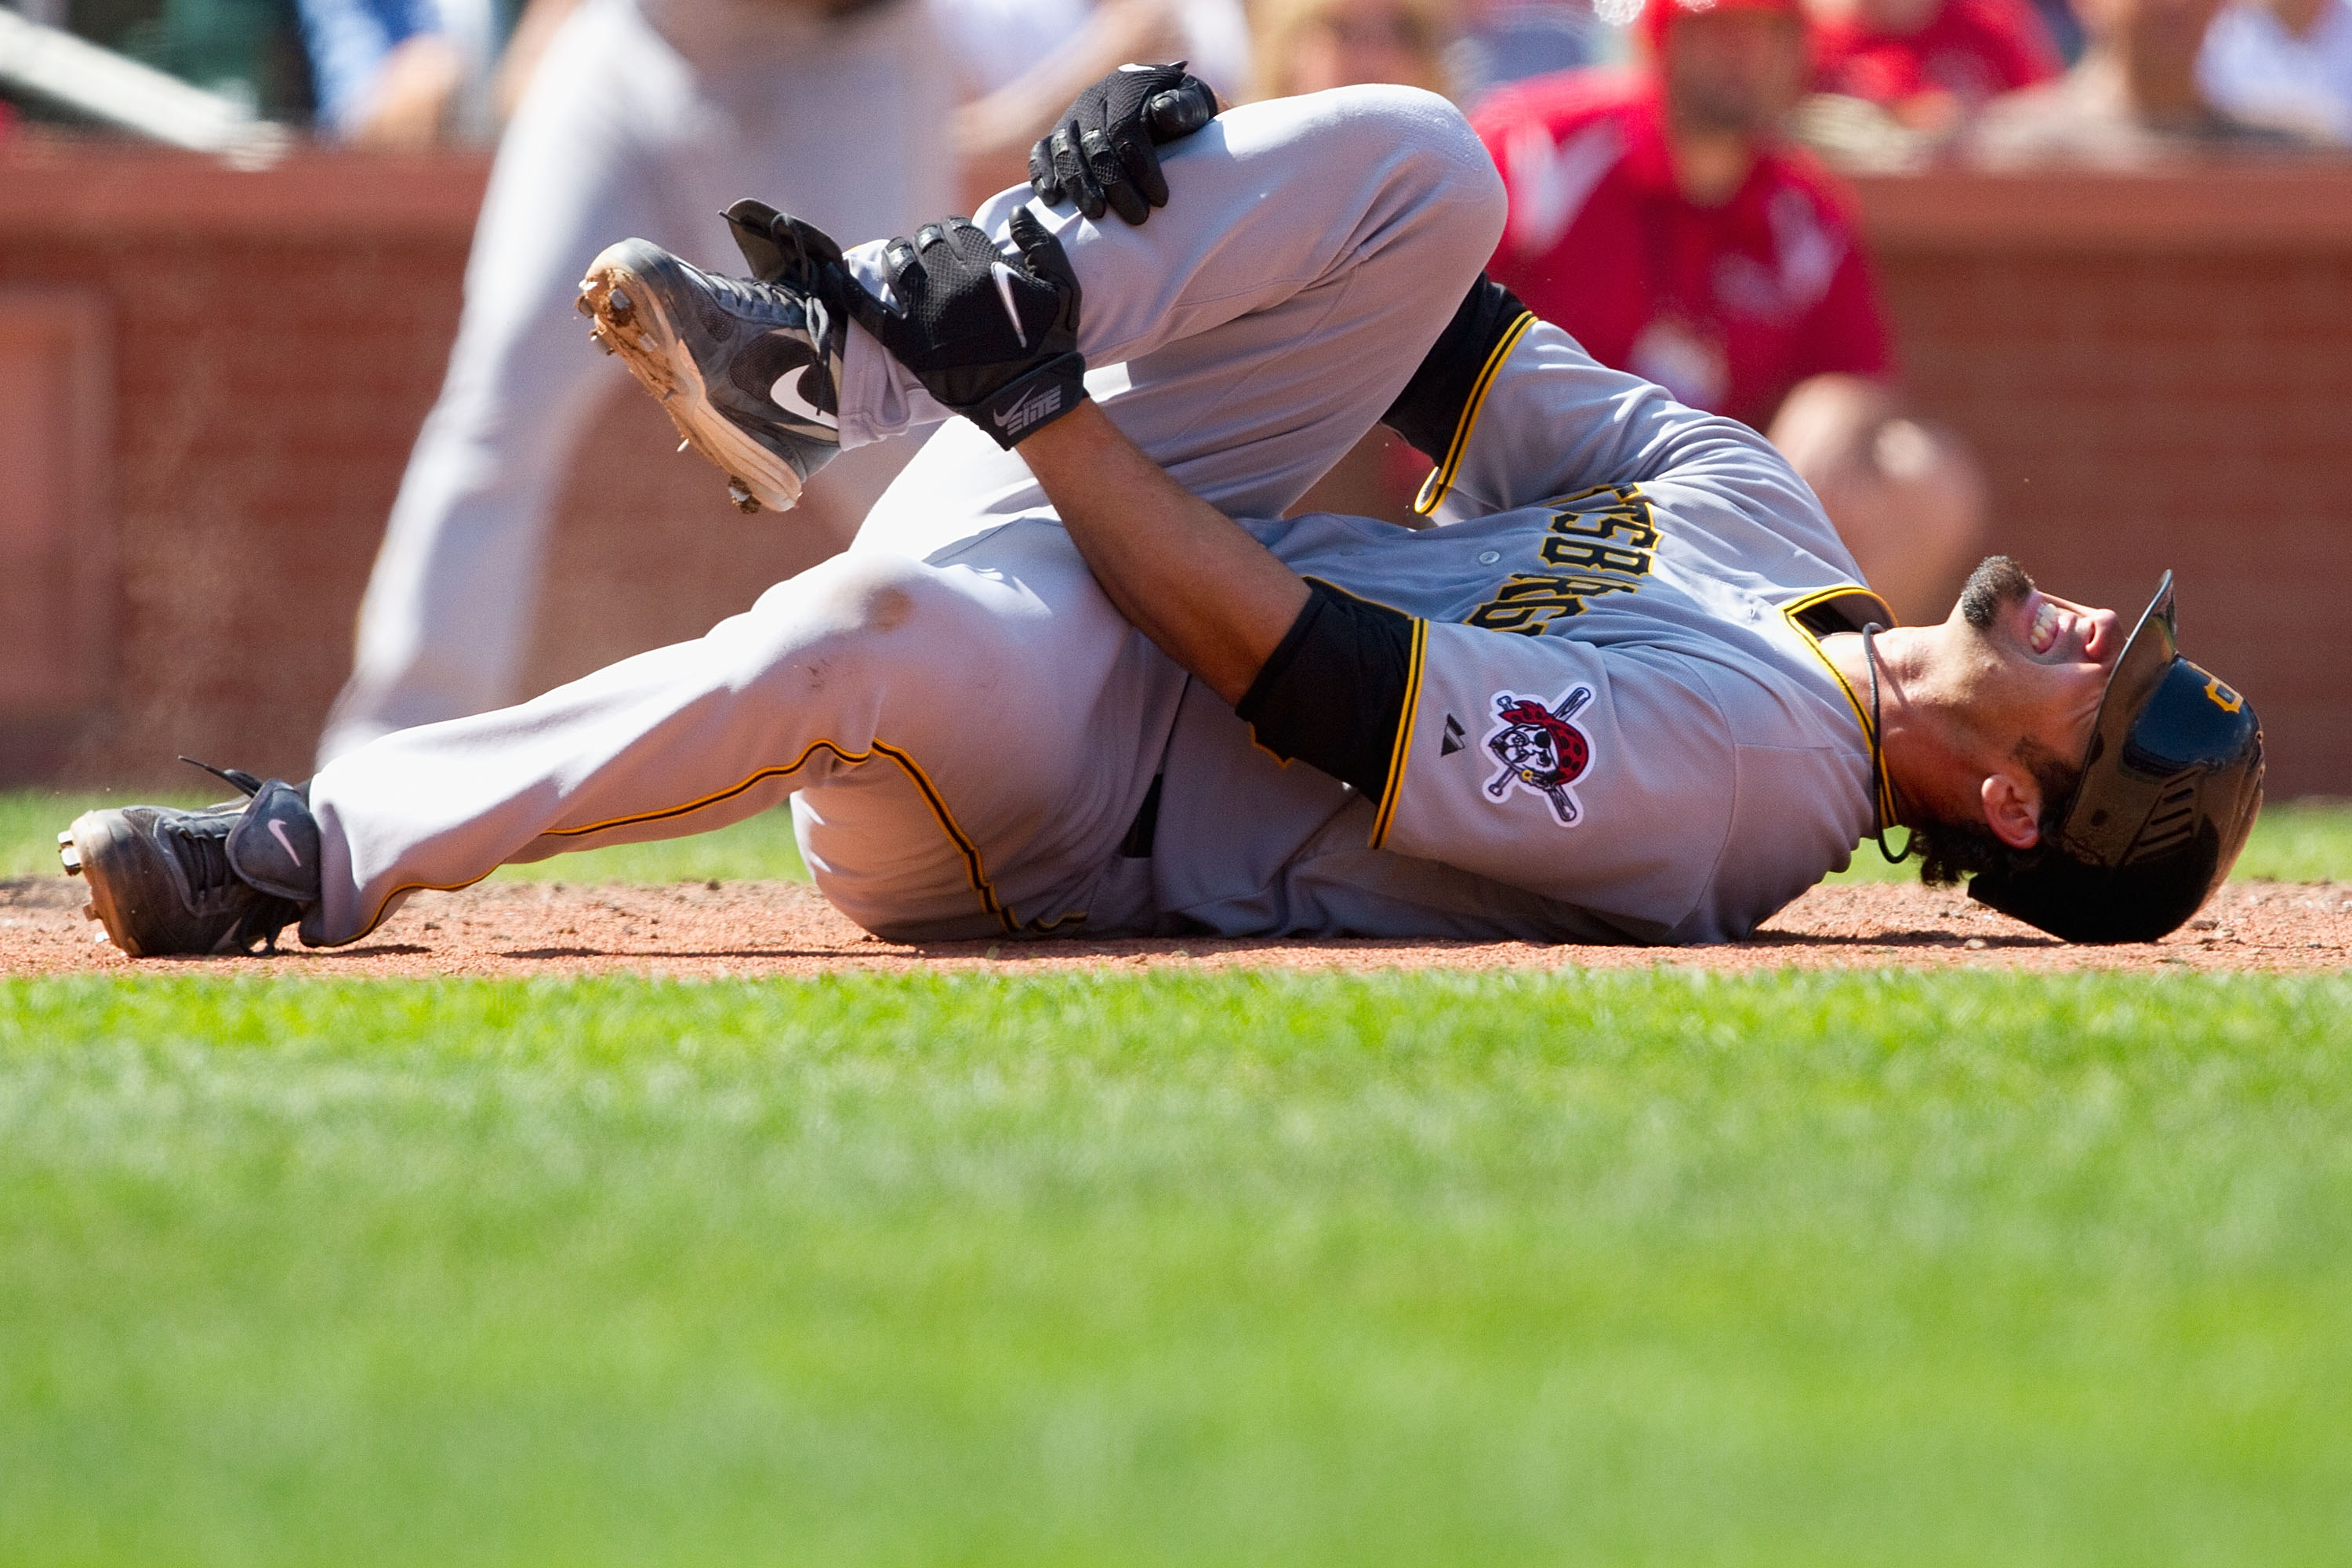 ST. LOUIS - AUGUST 1: Garrett Jones #46 of the Pittsburgh Pirates reacts to fouling a pitch off his leg against the St. Louis Cardinals at Busch Stadium on August 1, 2010 in St. Louis, Missouri.  The Cardinals beat the Pirates 9-1.  (Photo by Dilip Vishwa